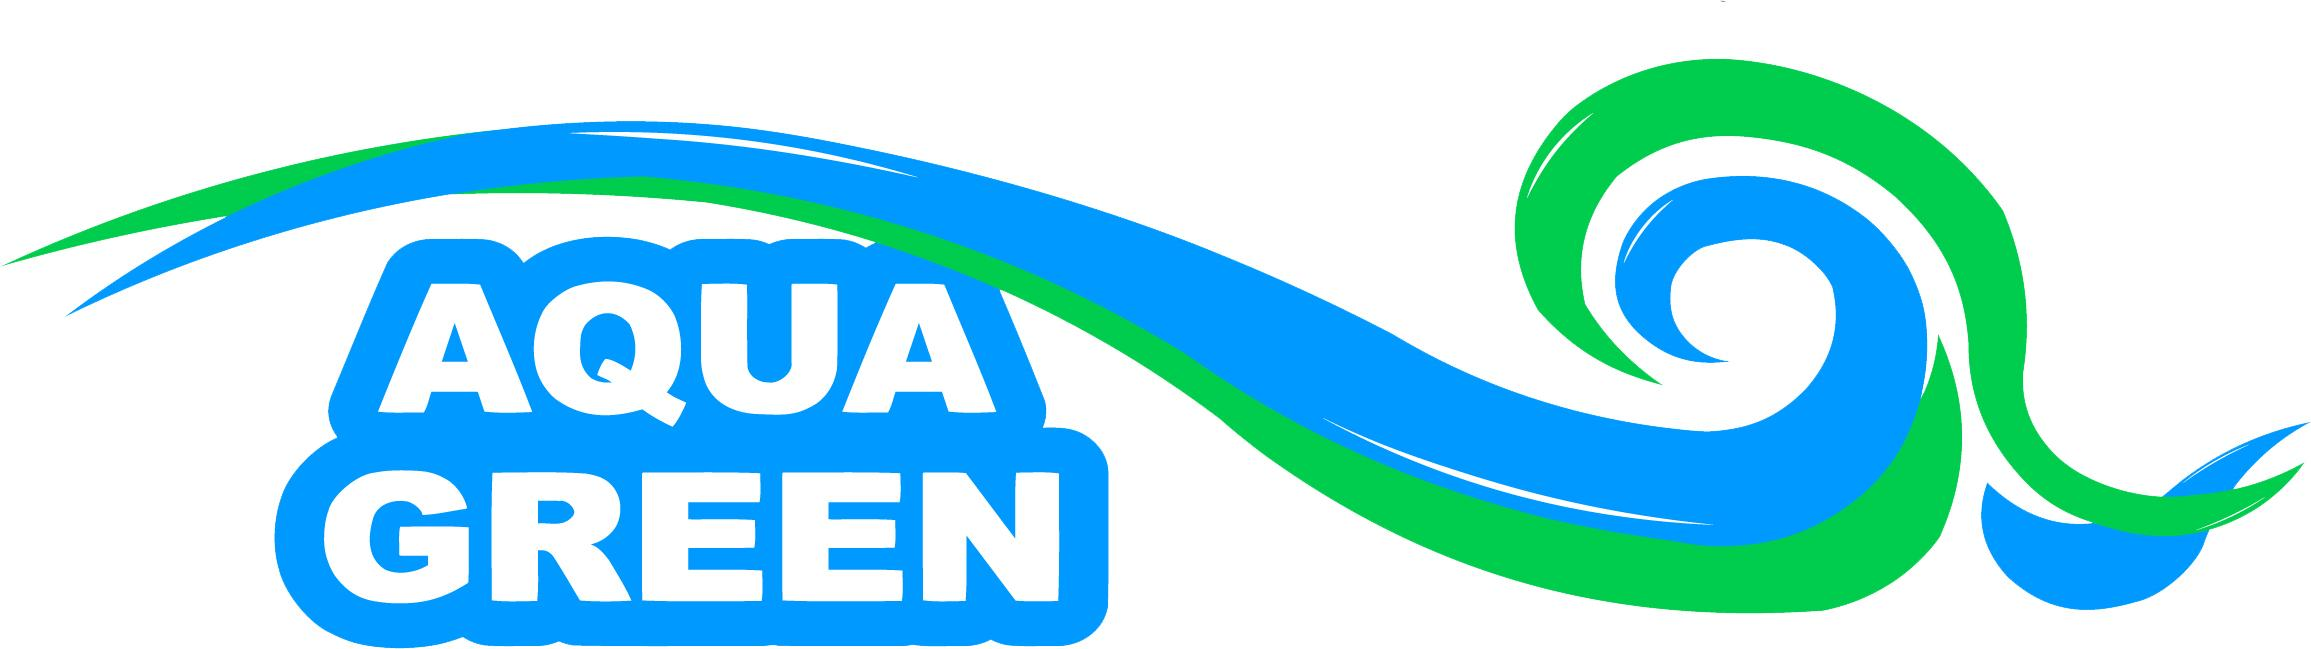 aquagreen logo_1_36